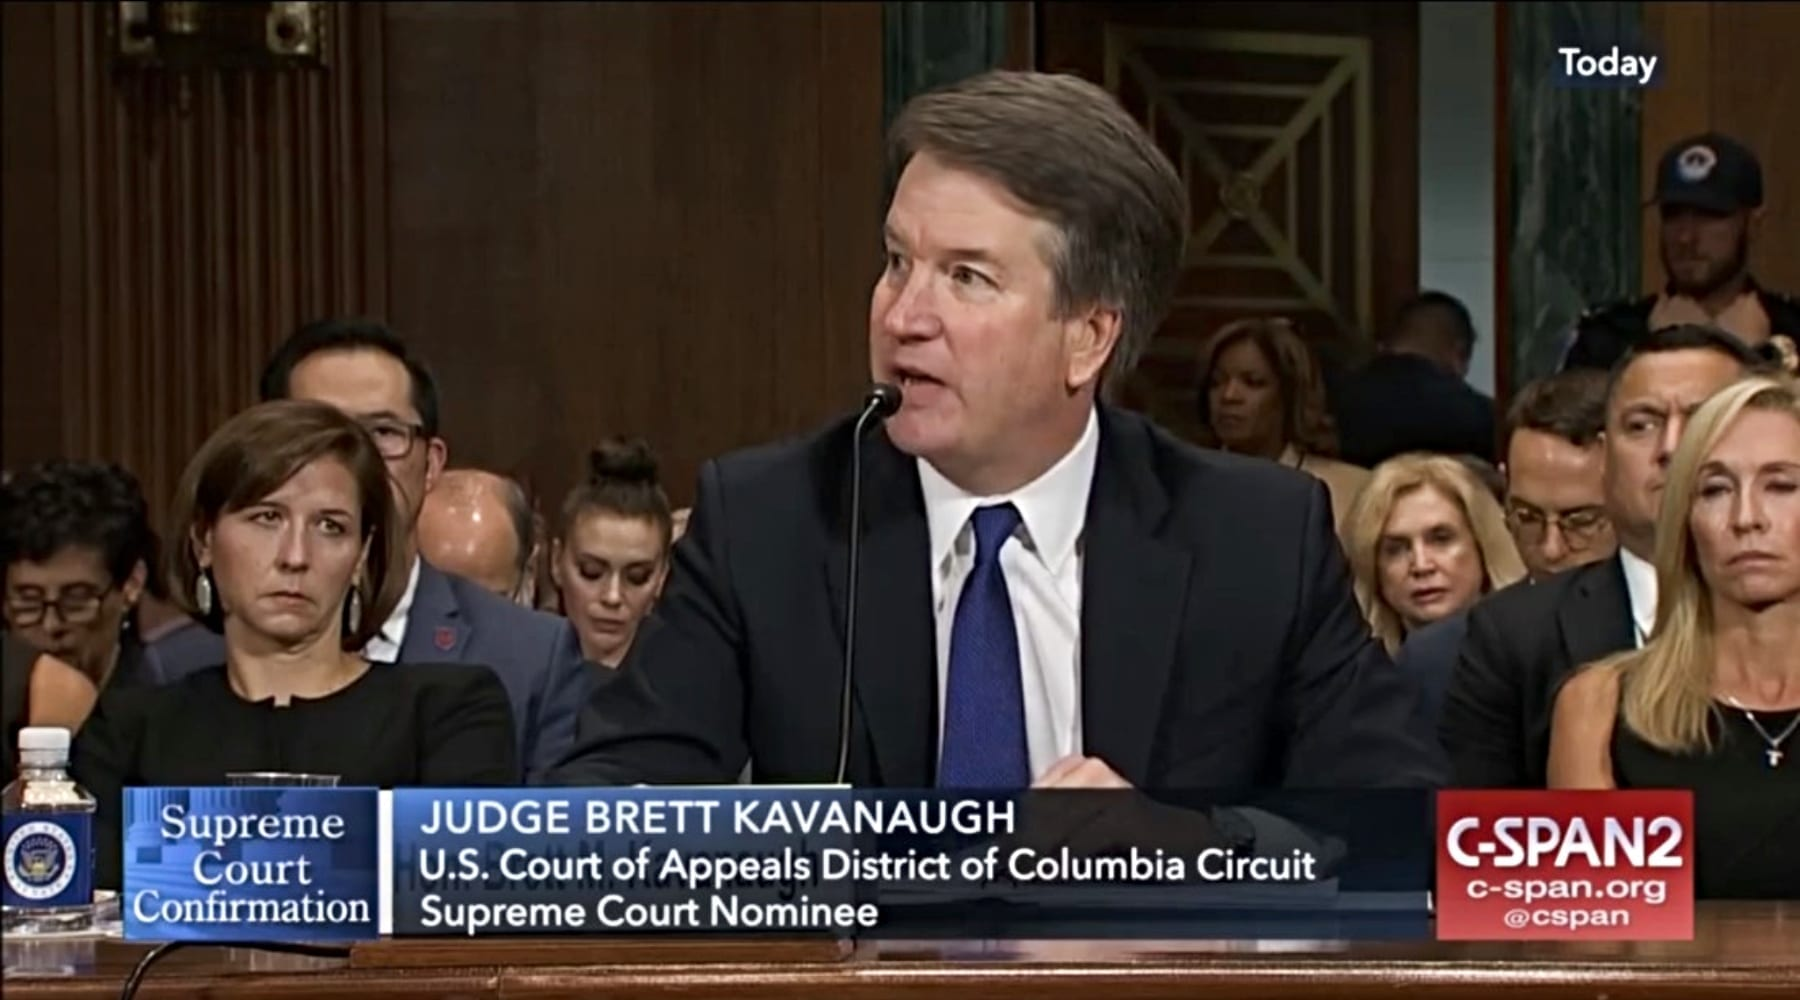 The Kavanaugh Affair, Patriarchal Power and the Decline of Decency